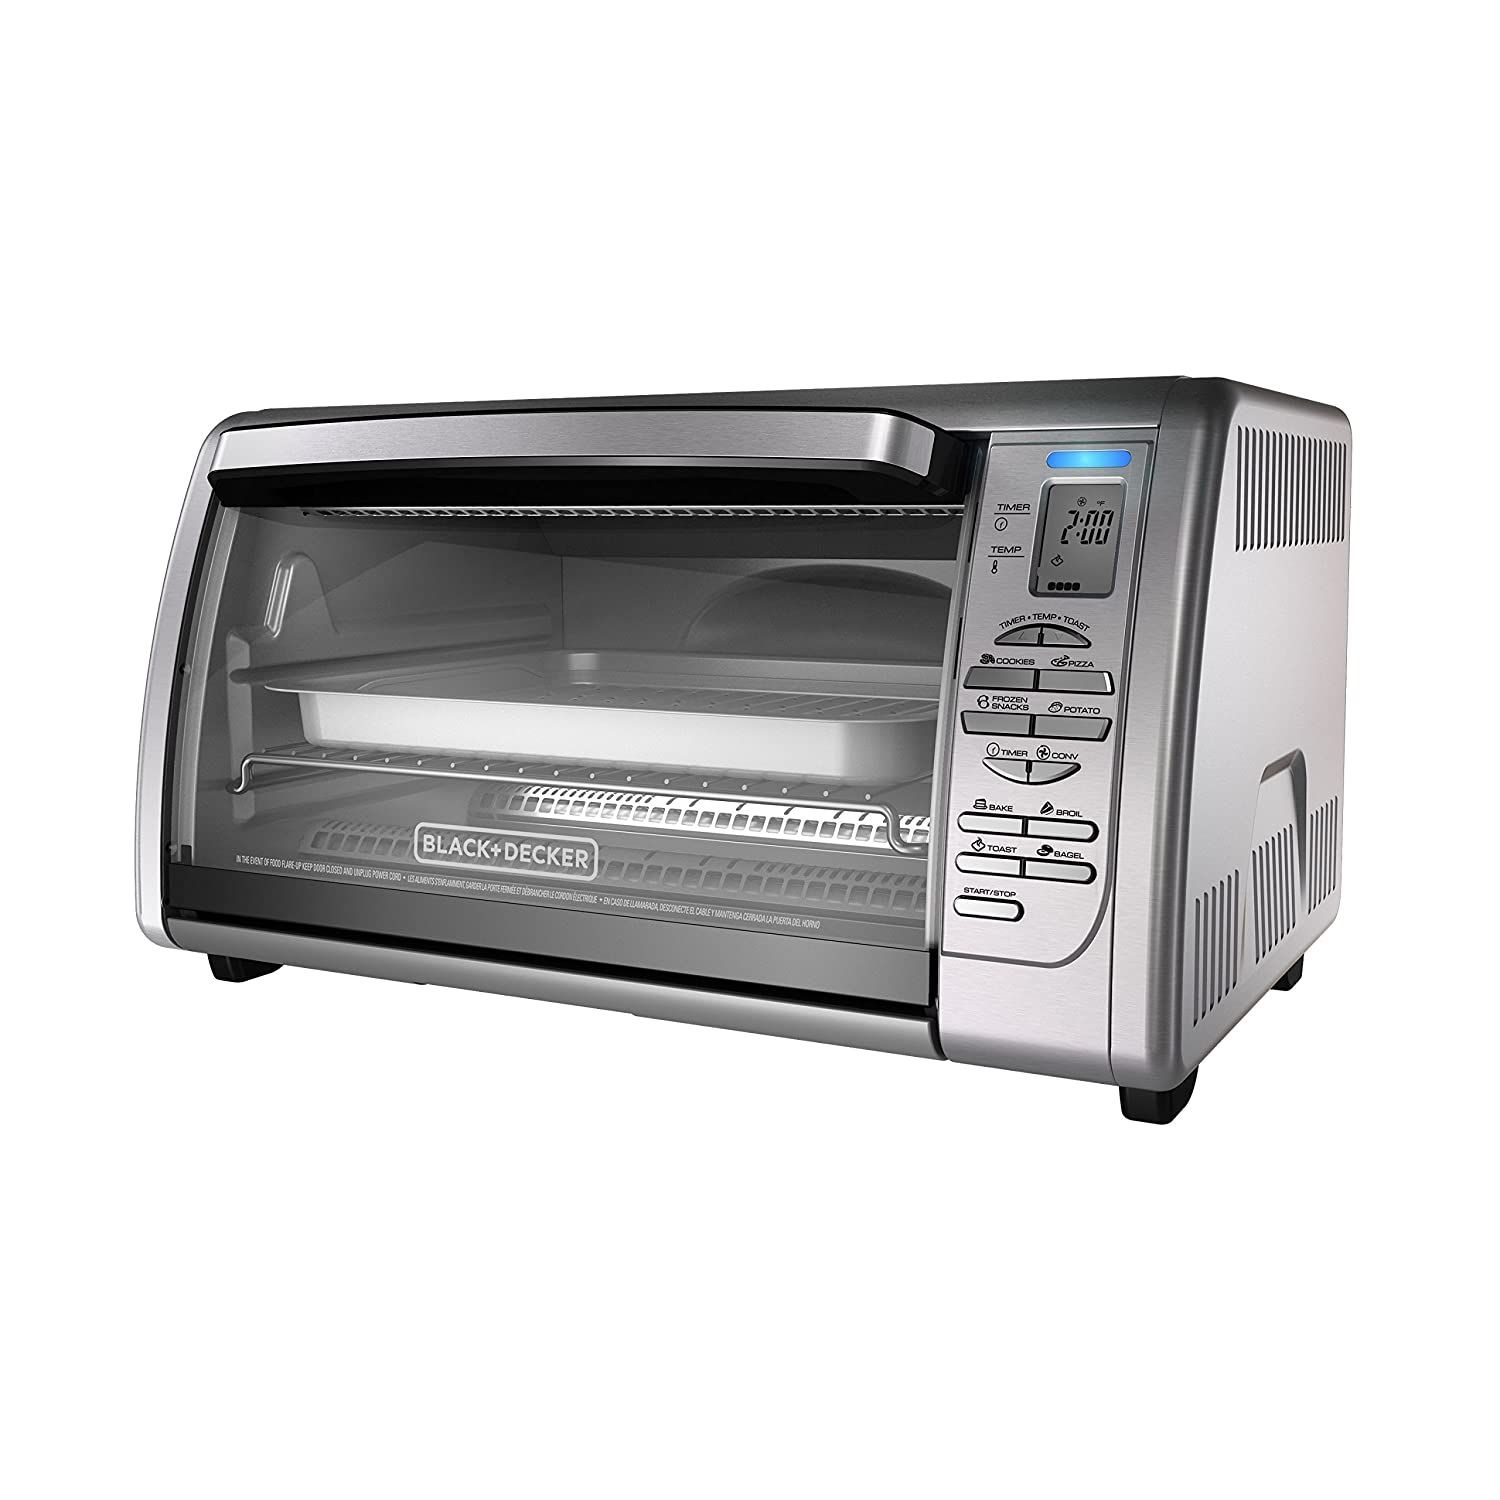 BLACK+DECKER Countertop Convection Toaster Oven, Silver, CTO6335S (Certified Refurbished)